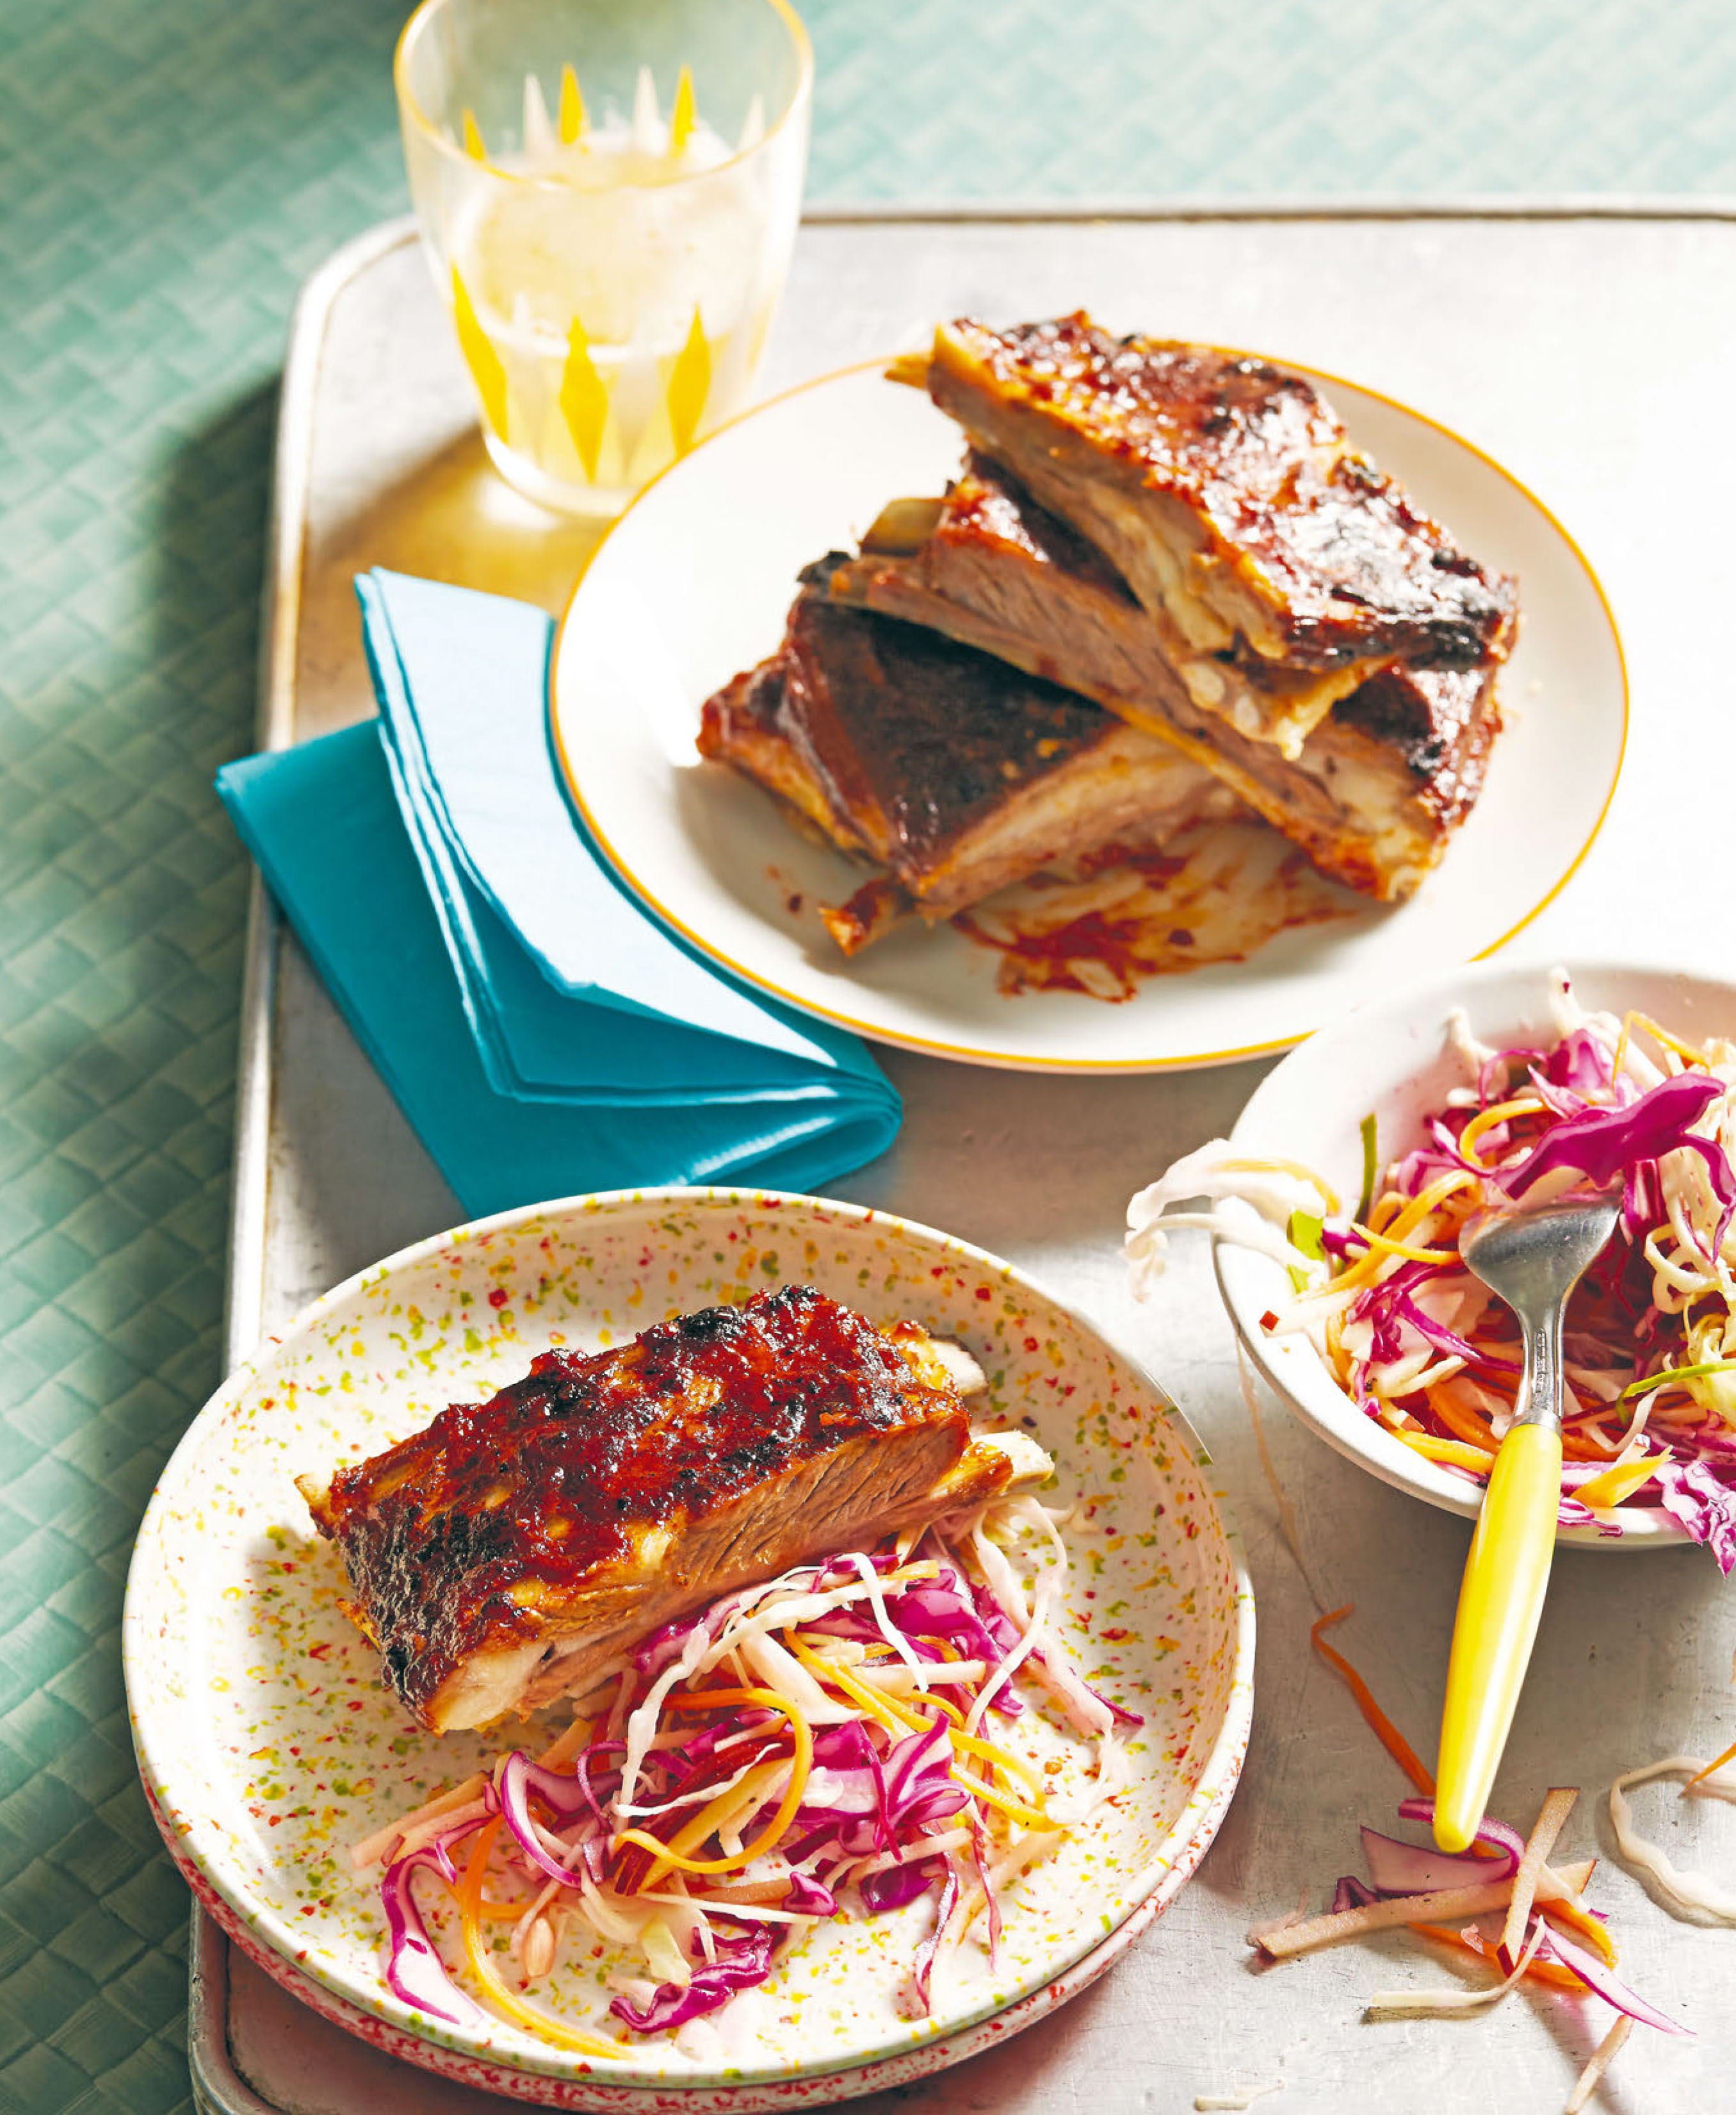 Lamb ribs with apple slaw